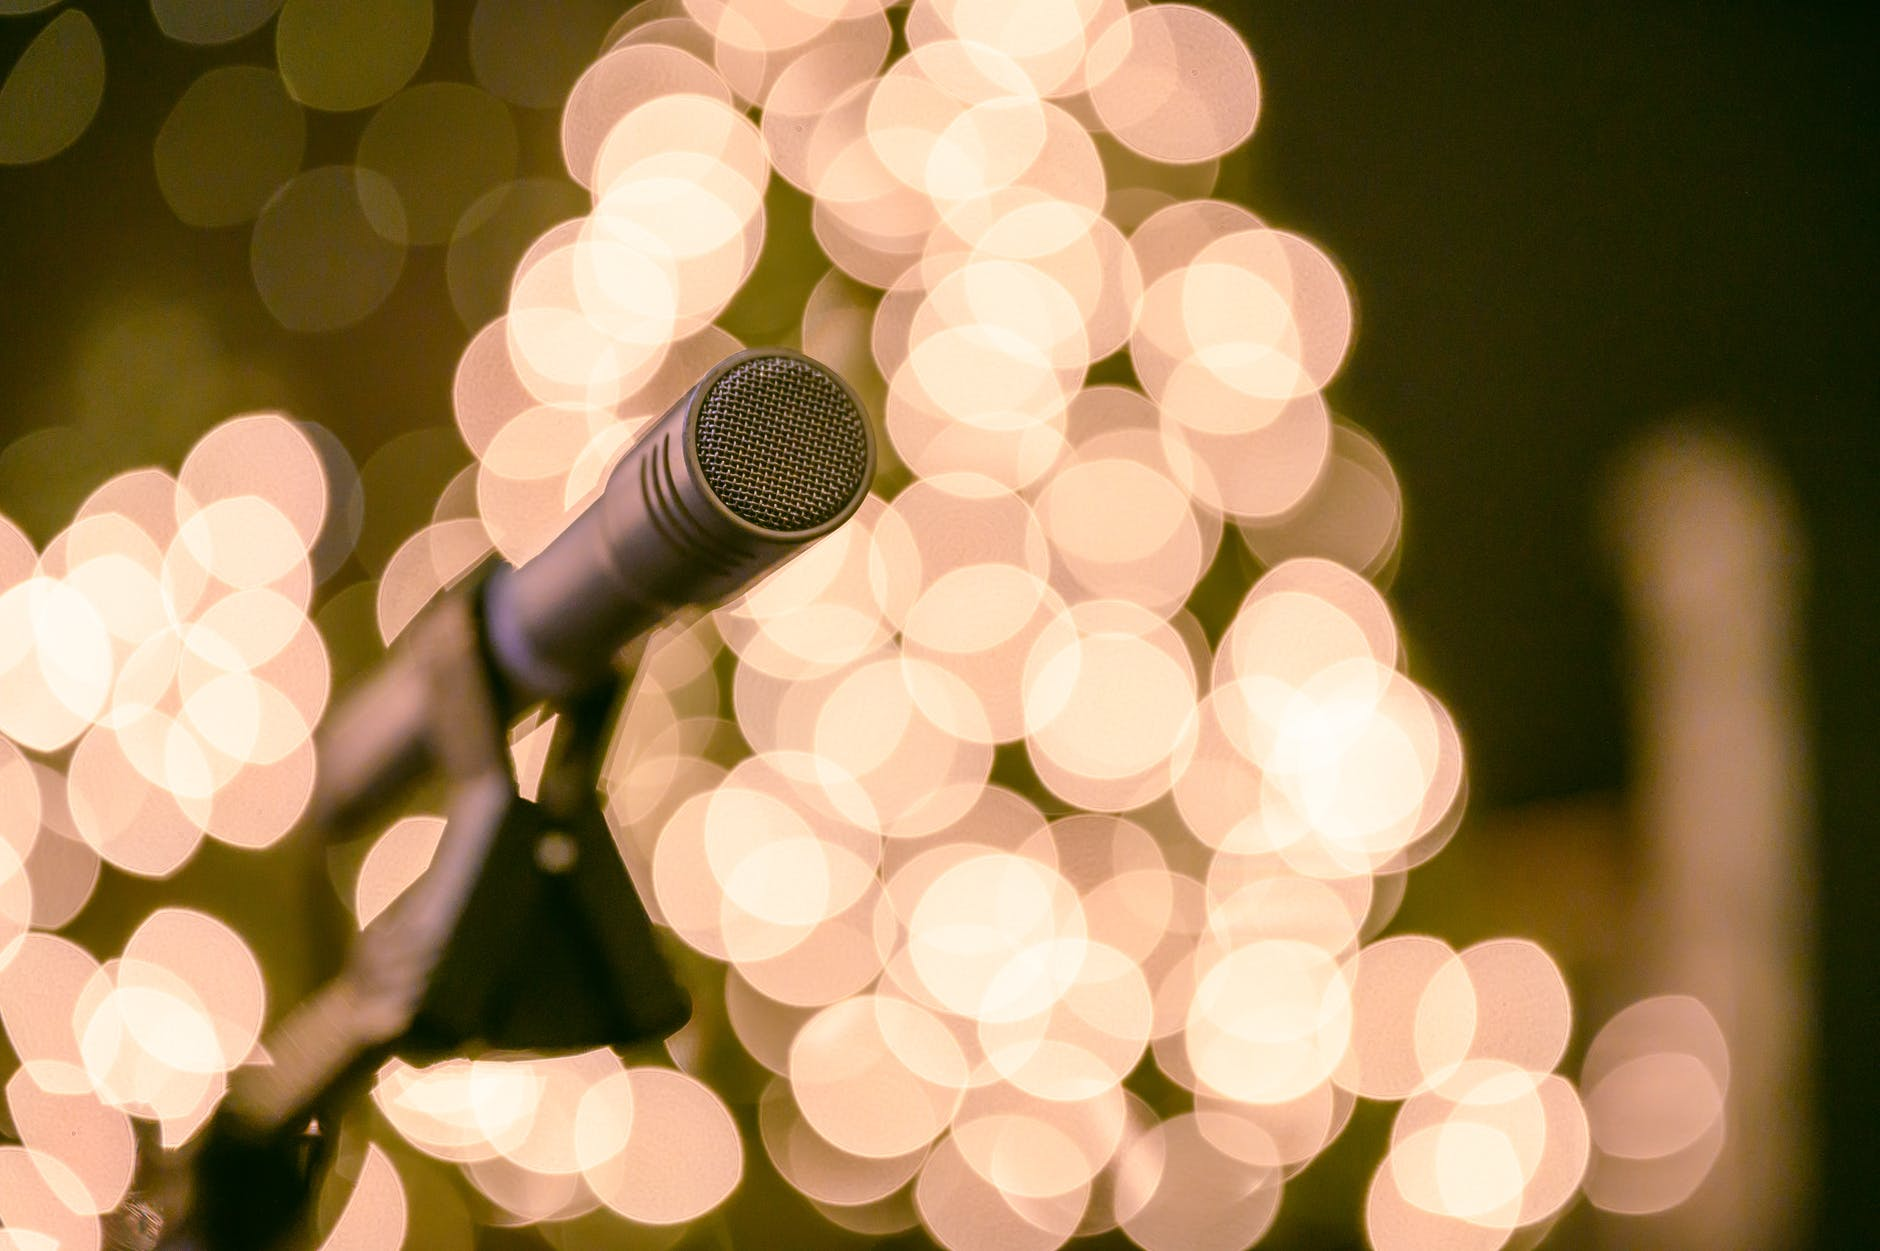 selective focus photo of microphone